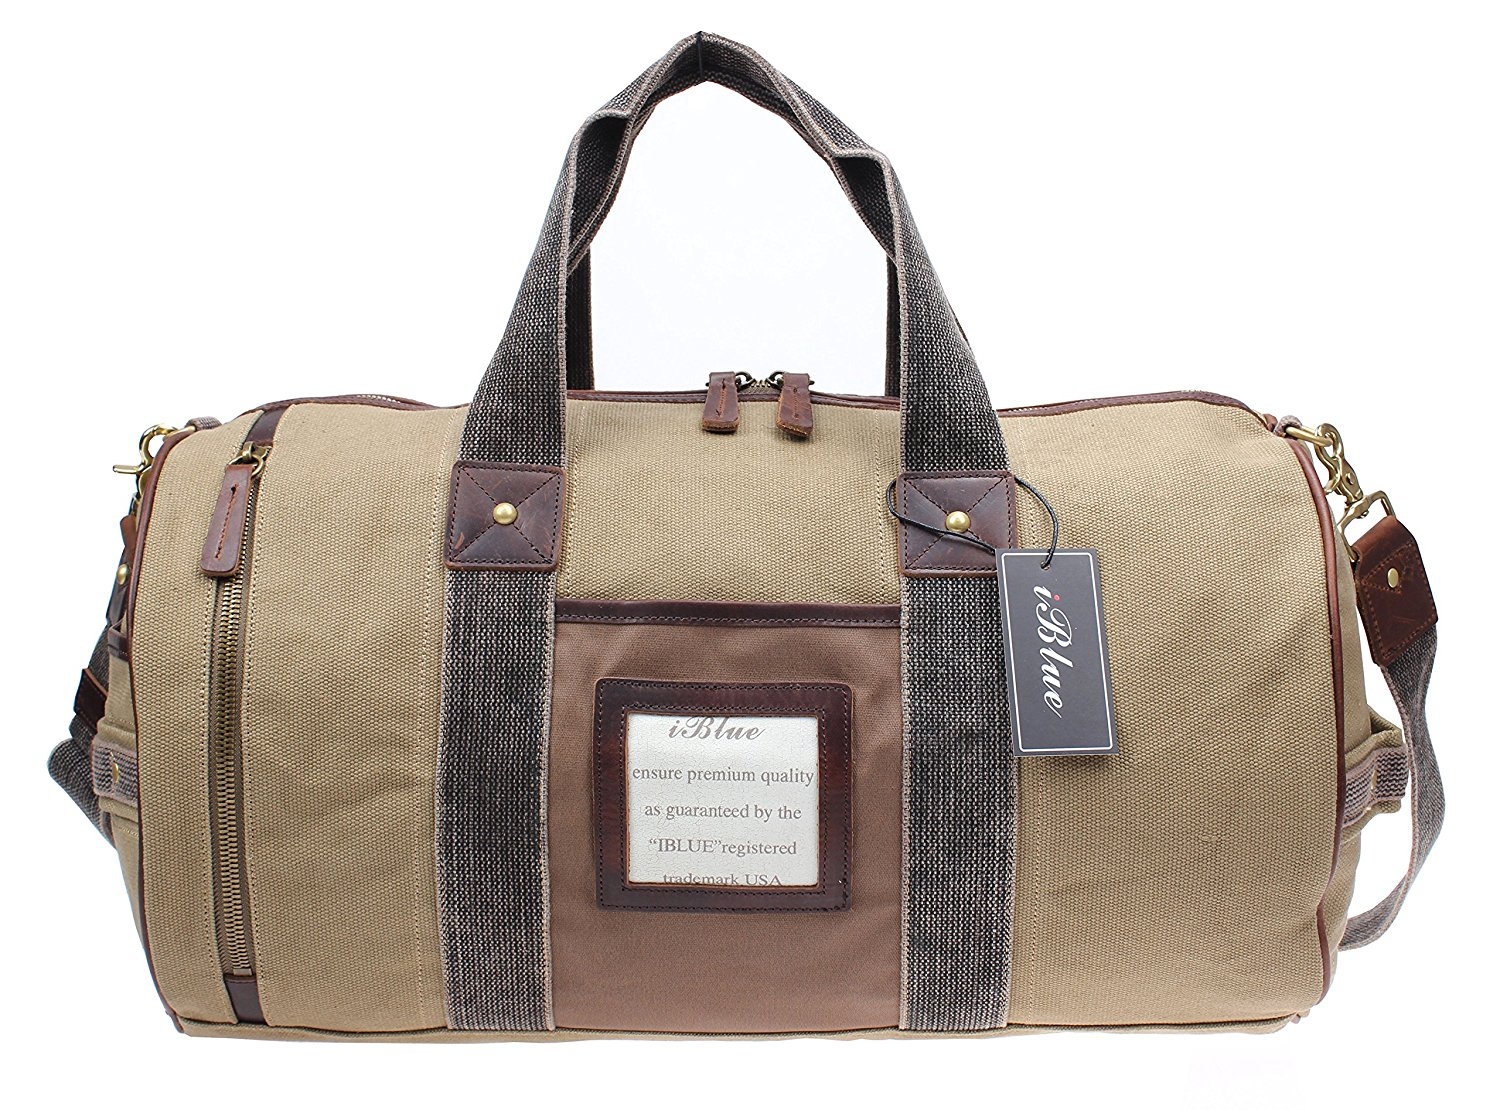 7961de7430 Get Quotations · Iblue Durable Canvas Weekend Gym Hand Bag Mens Leather  Vacation Flight Travel Overnight Bag Khaki 10184